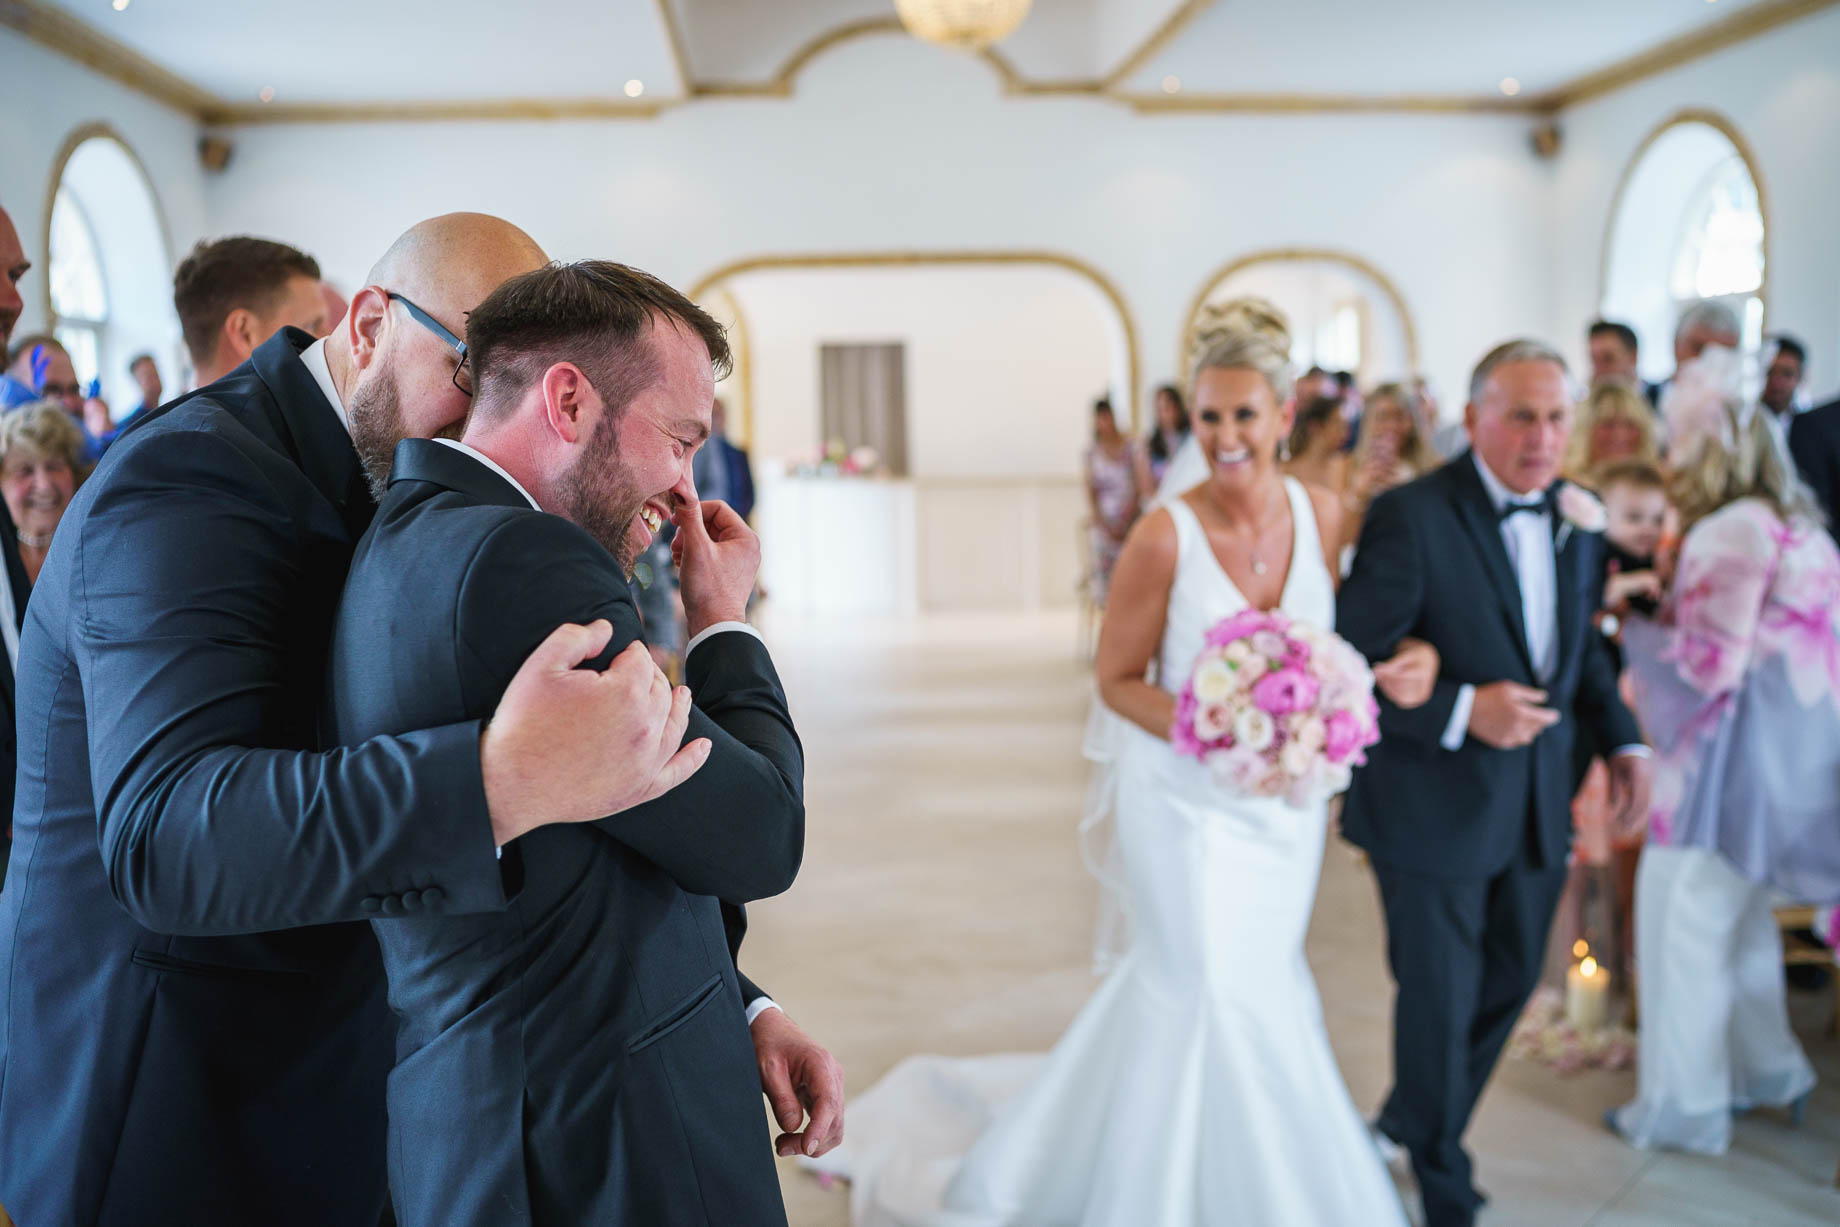 Northbrook Park wedding photography - Guy Collier Photography